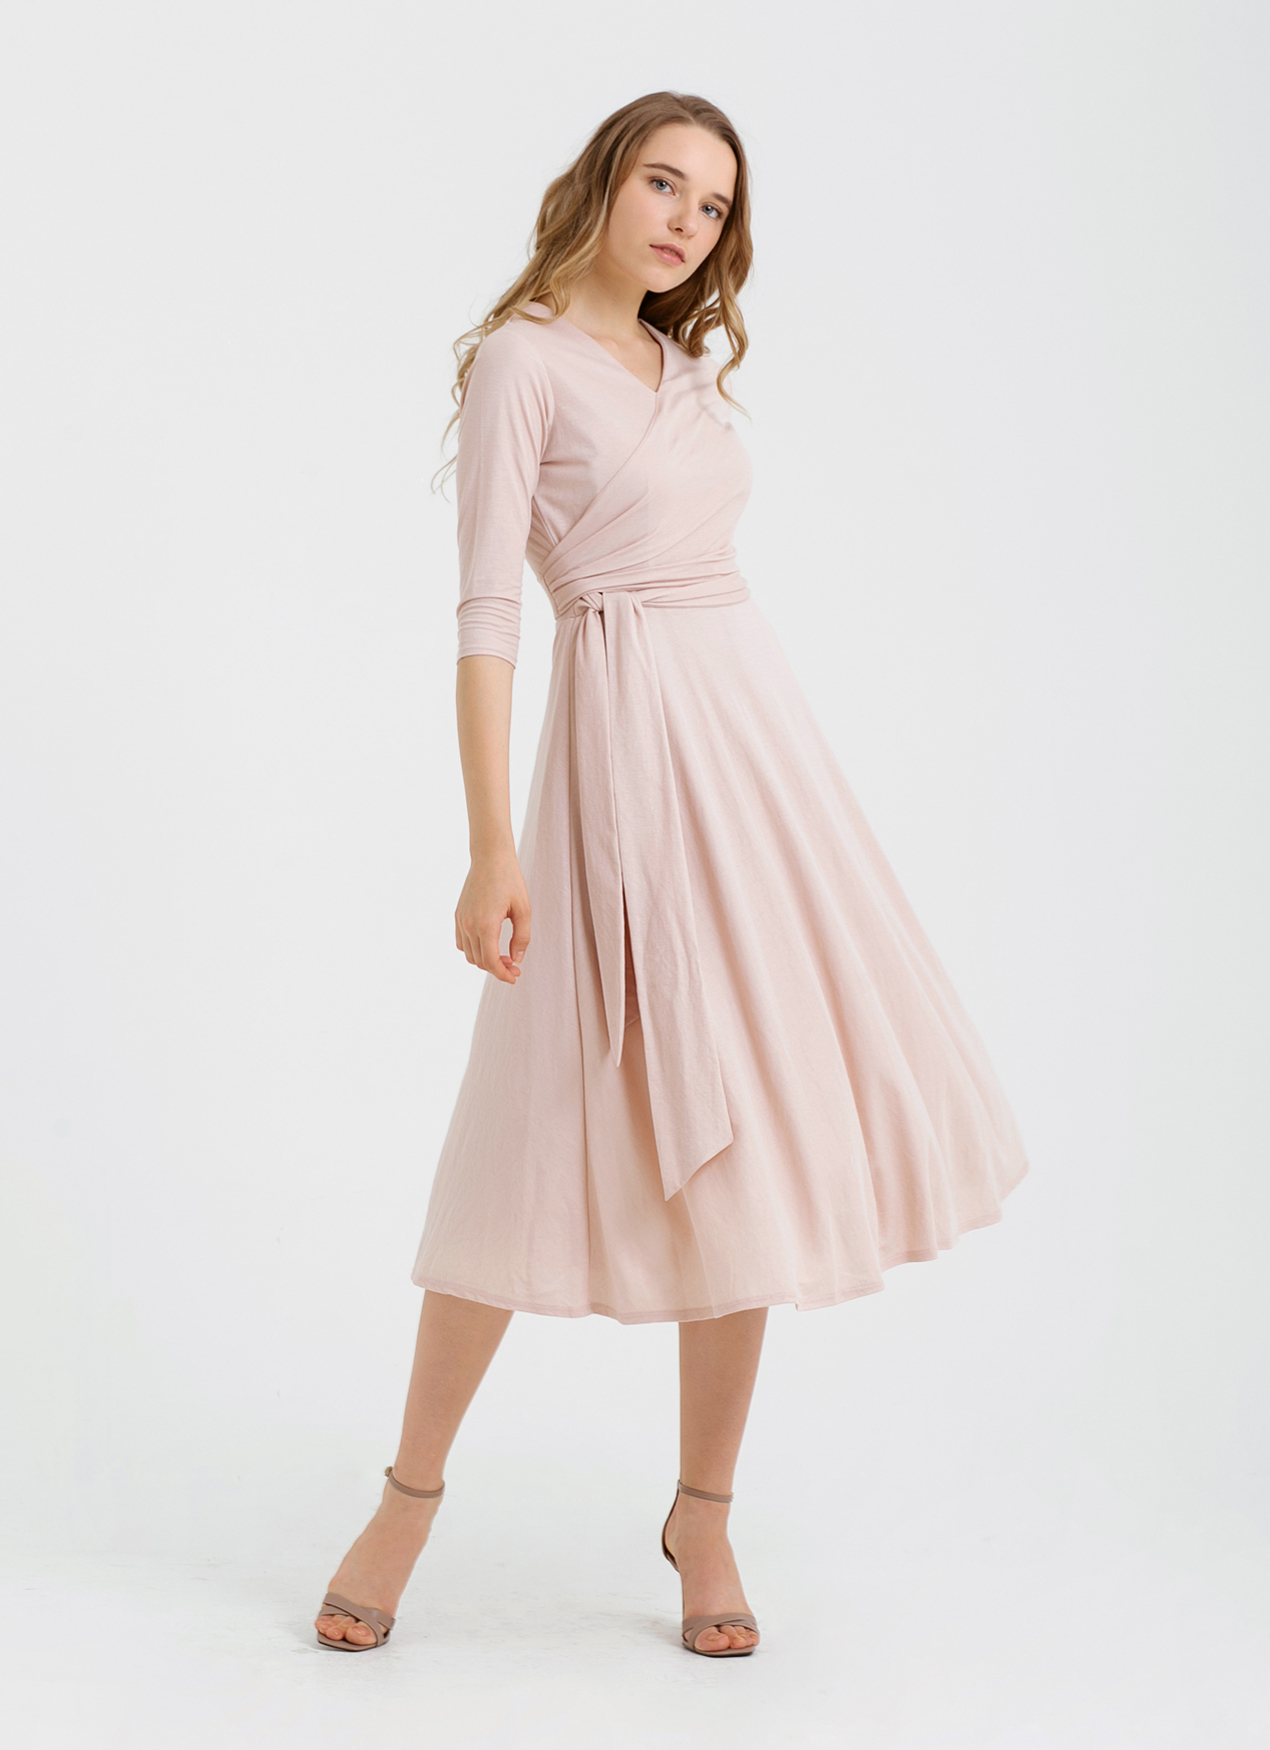 CLOTH INC Overlap Knit Midi Dress - Rose